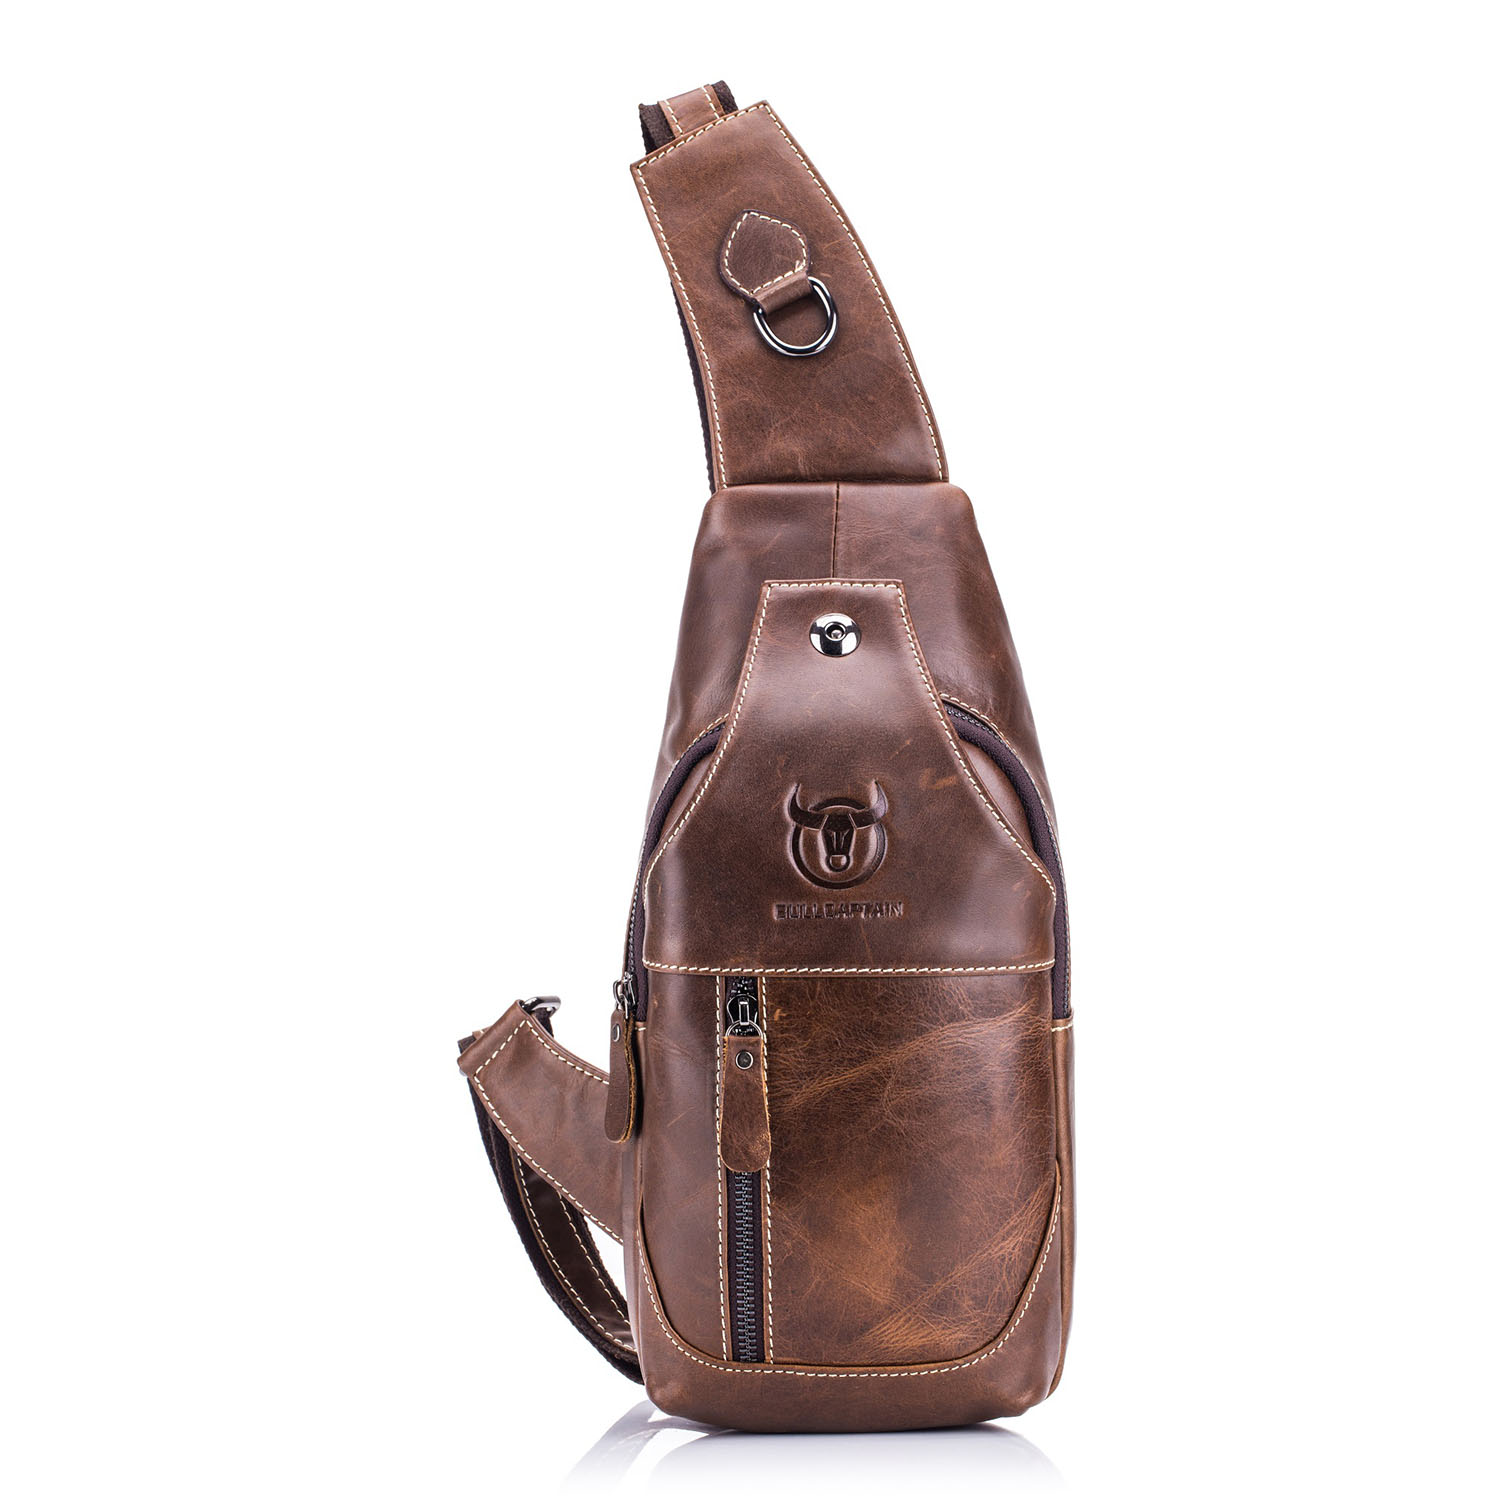 TEXU BULLCAPTAIN Men's Sling Bag Genuine Leather Chest Shoulder Backpack Cross Body Purse Water Resistant Anti Theft For Travel